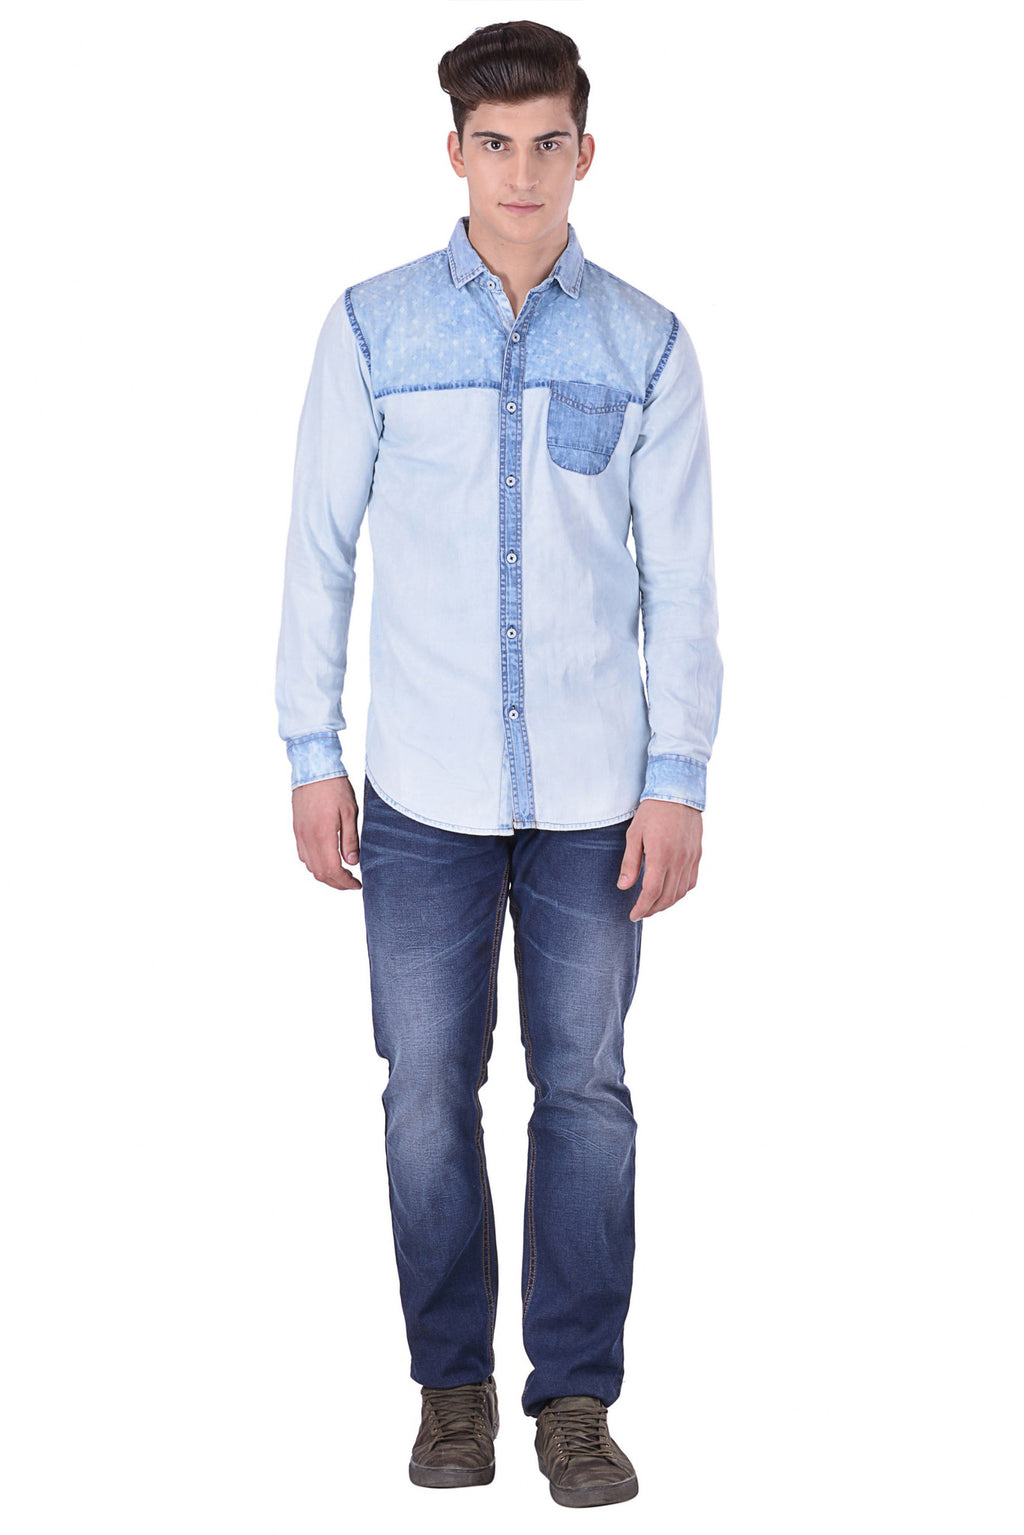 Hoffmen Men's Solid Casual Blue Denim Shirt DP1007